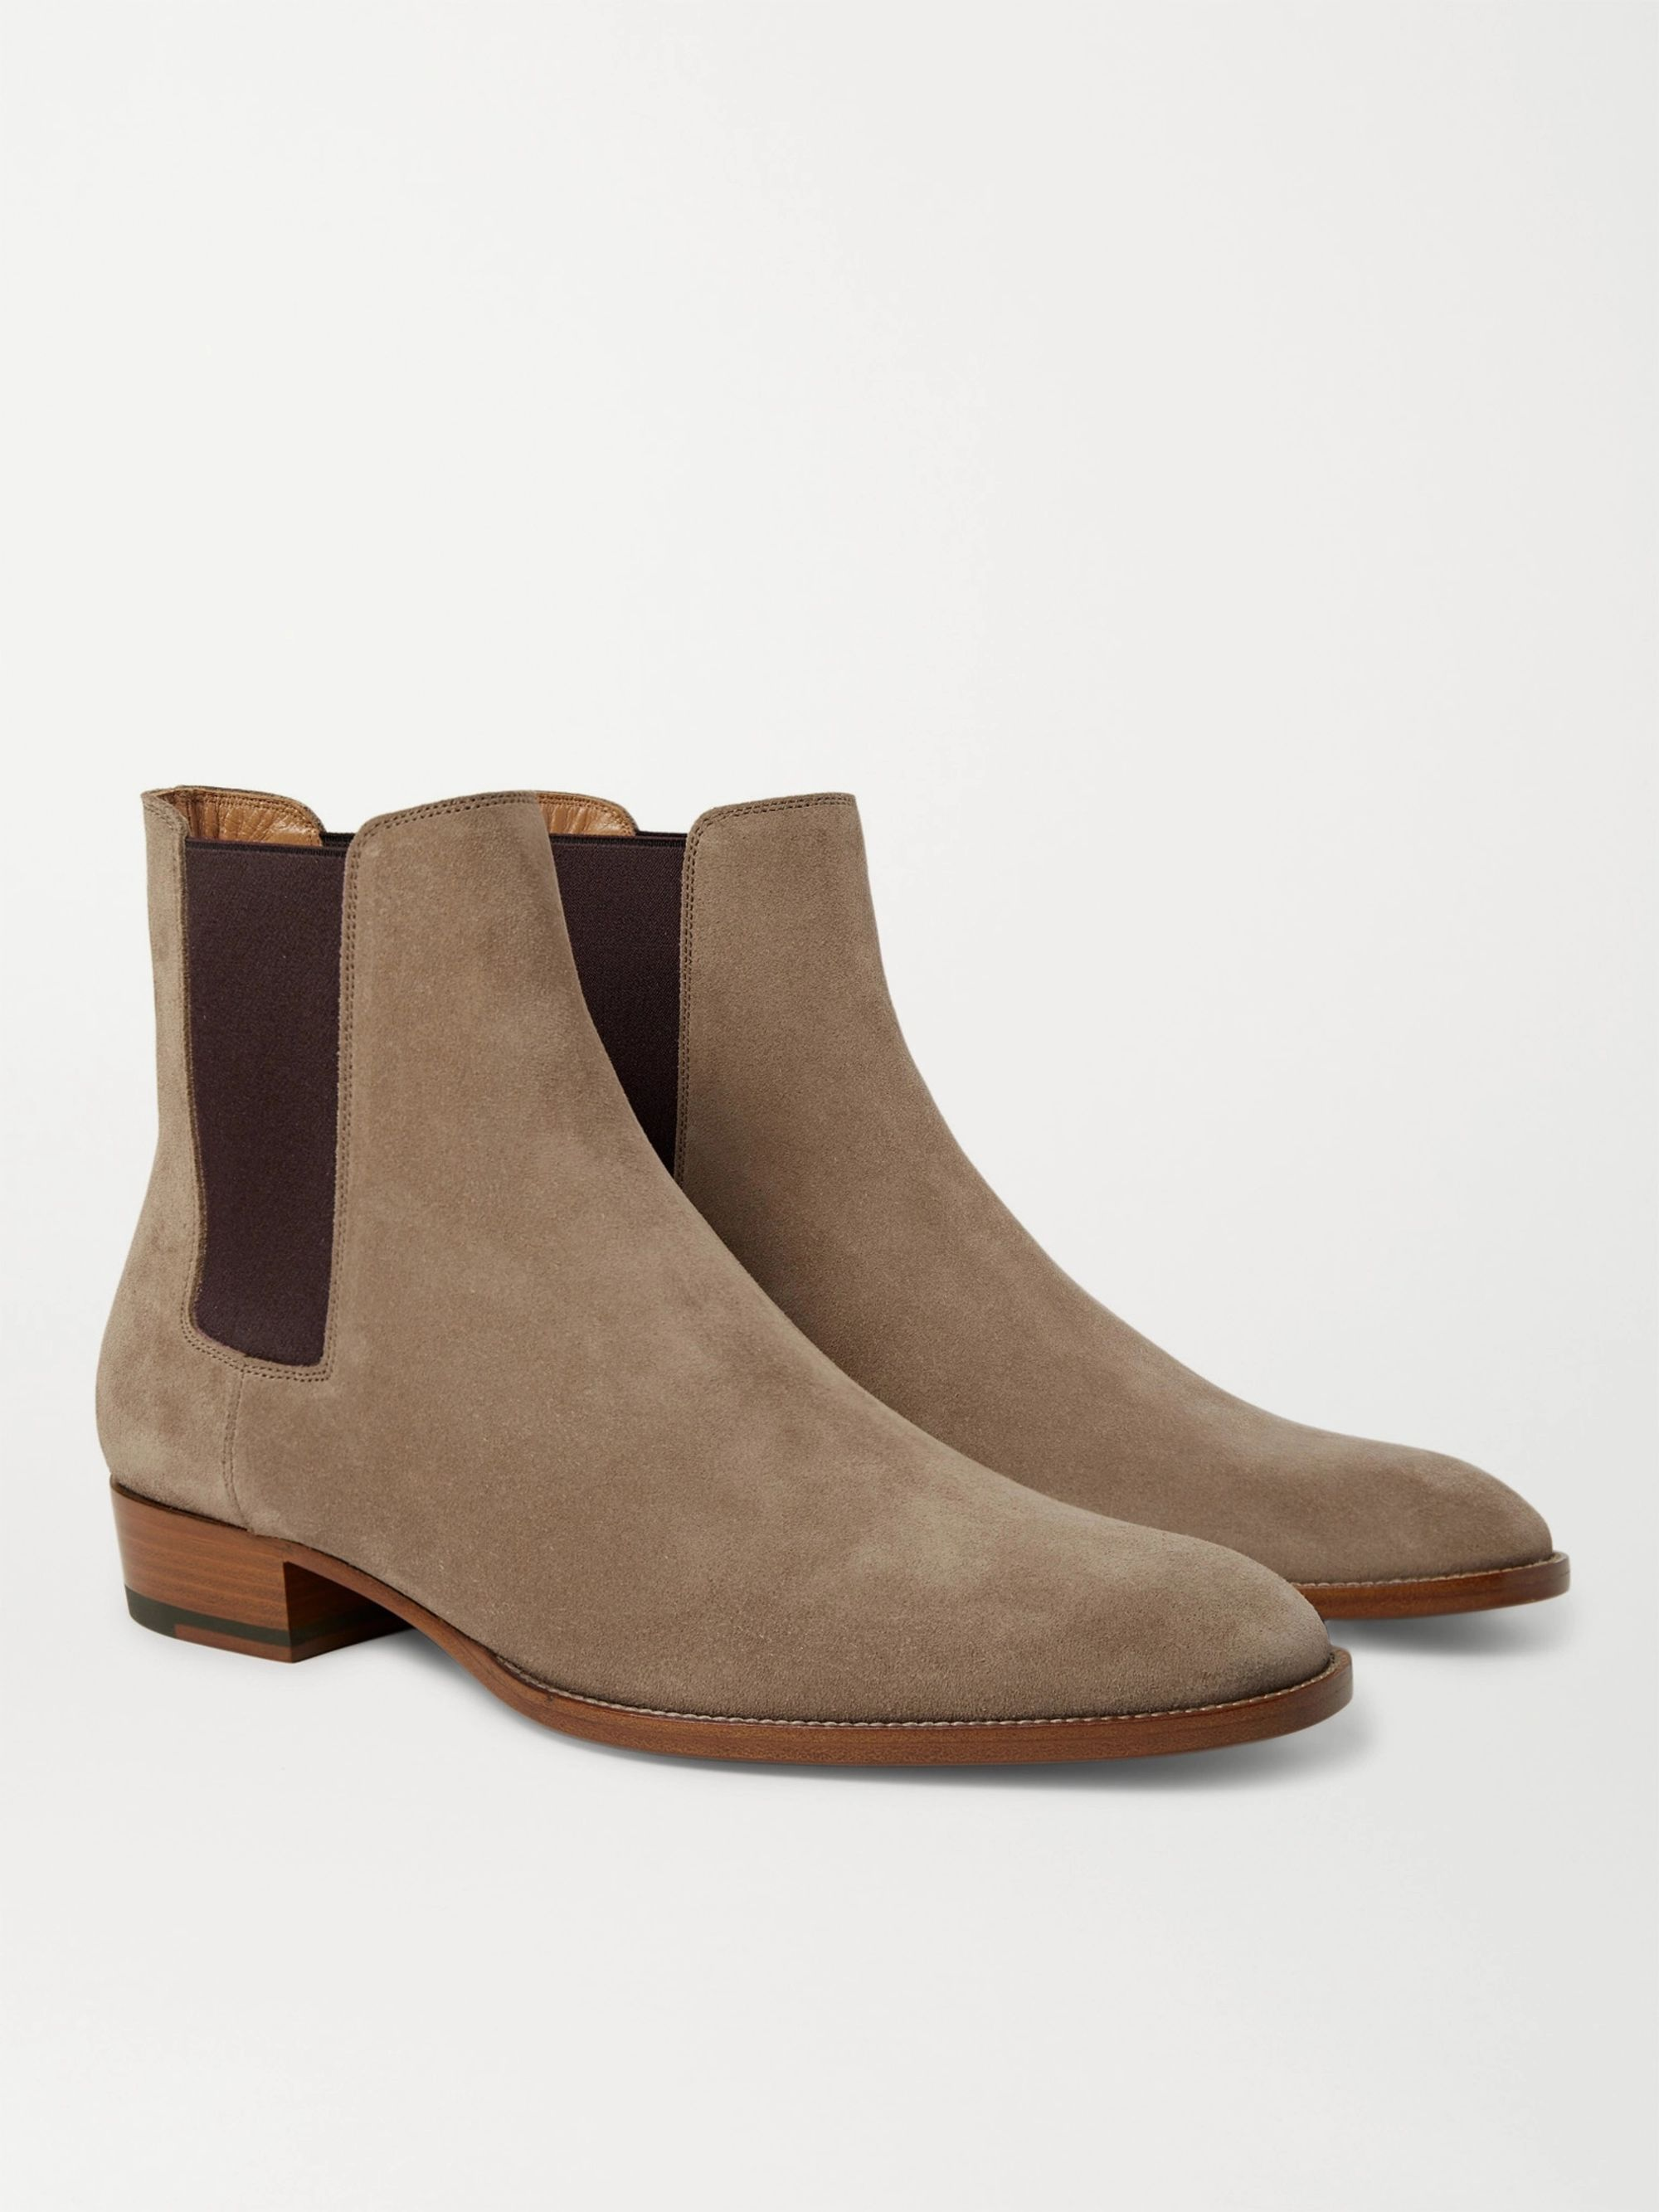 6f04e43eebd SAINT LAURENT Boots | MR PORTER